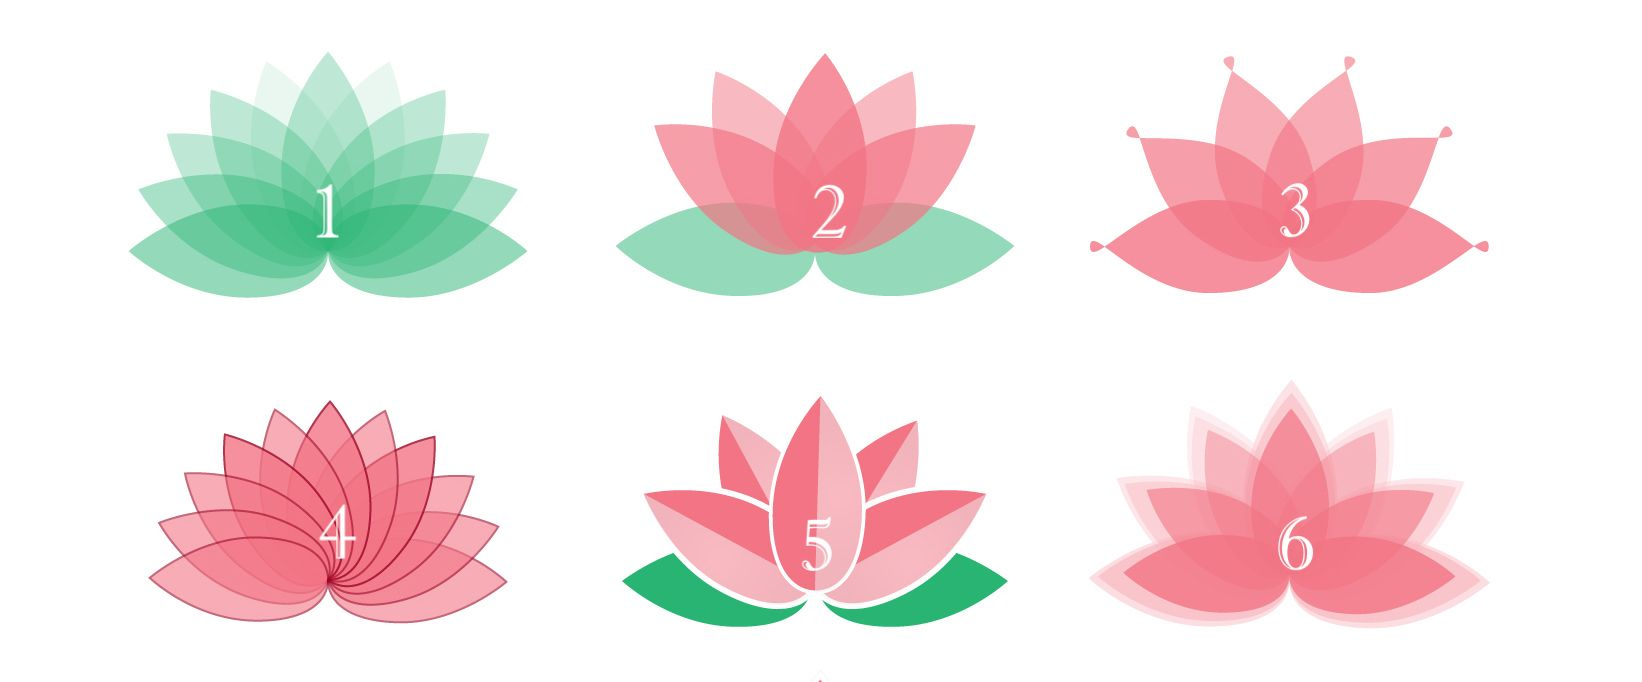 Pick A Lotus To Get Advice About Your Current Situation